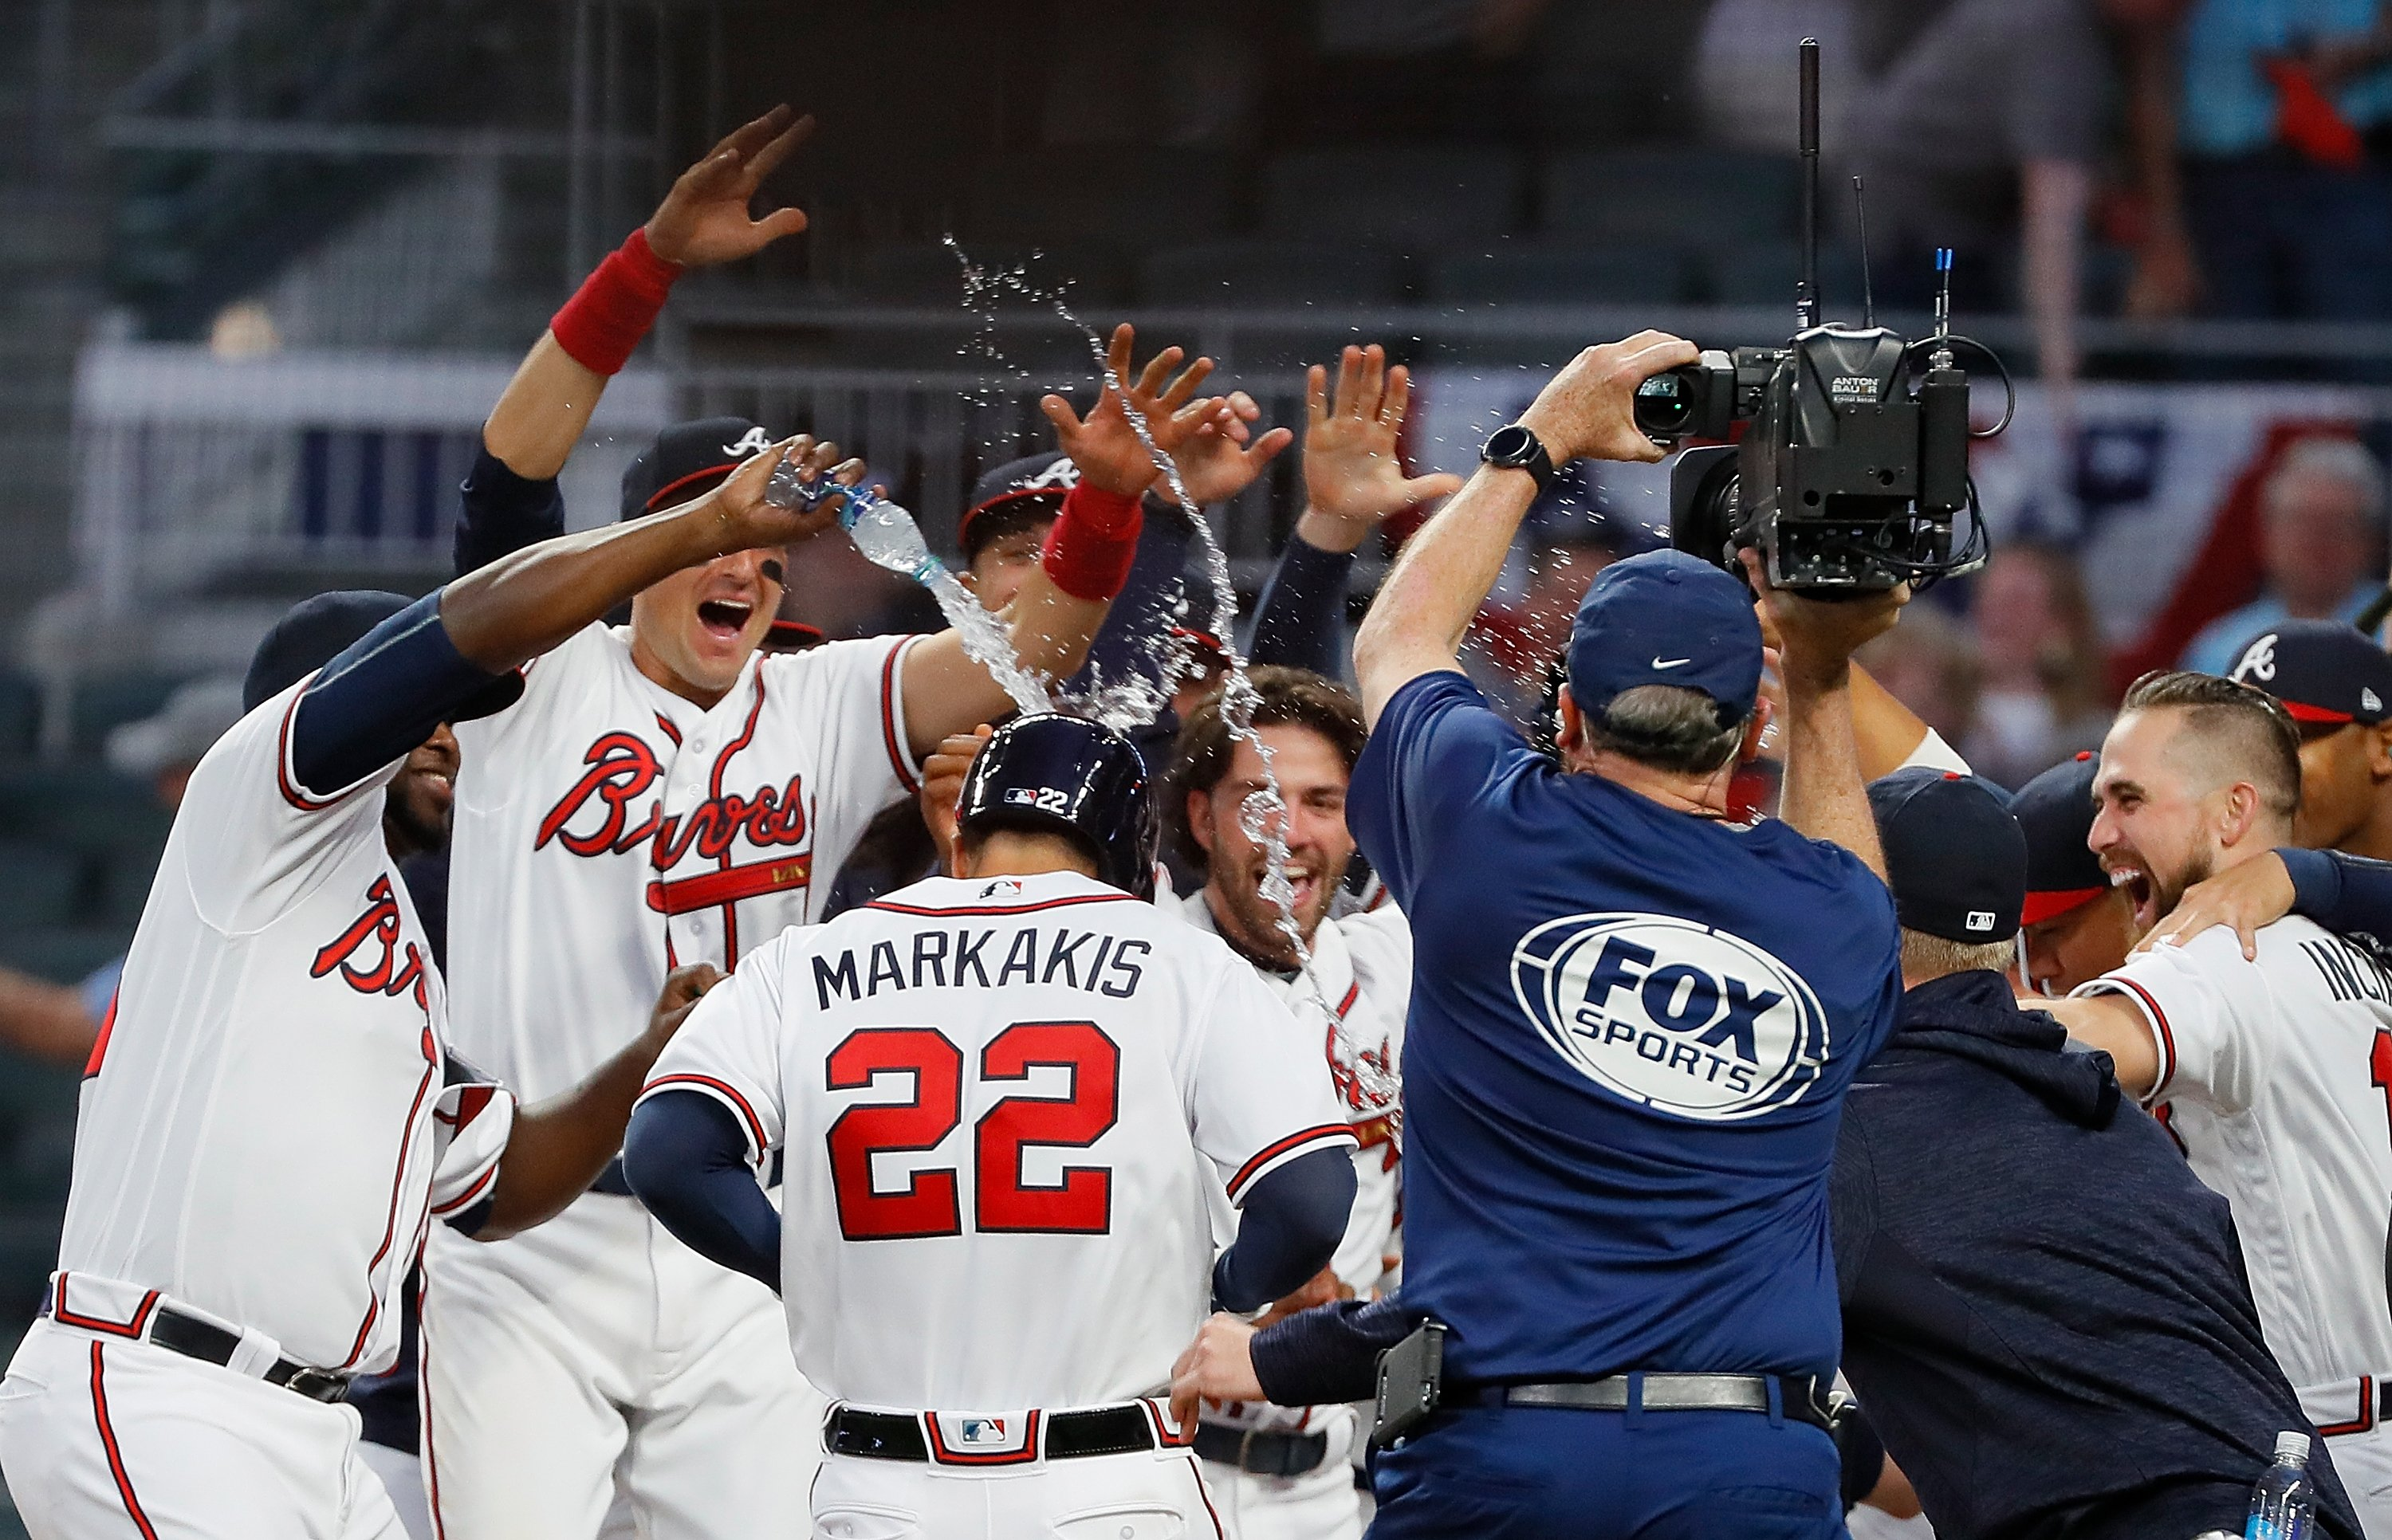 Braves Win With Walk Off Home Run on Opening Day